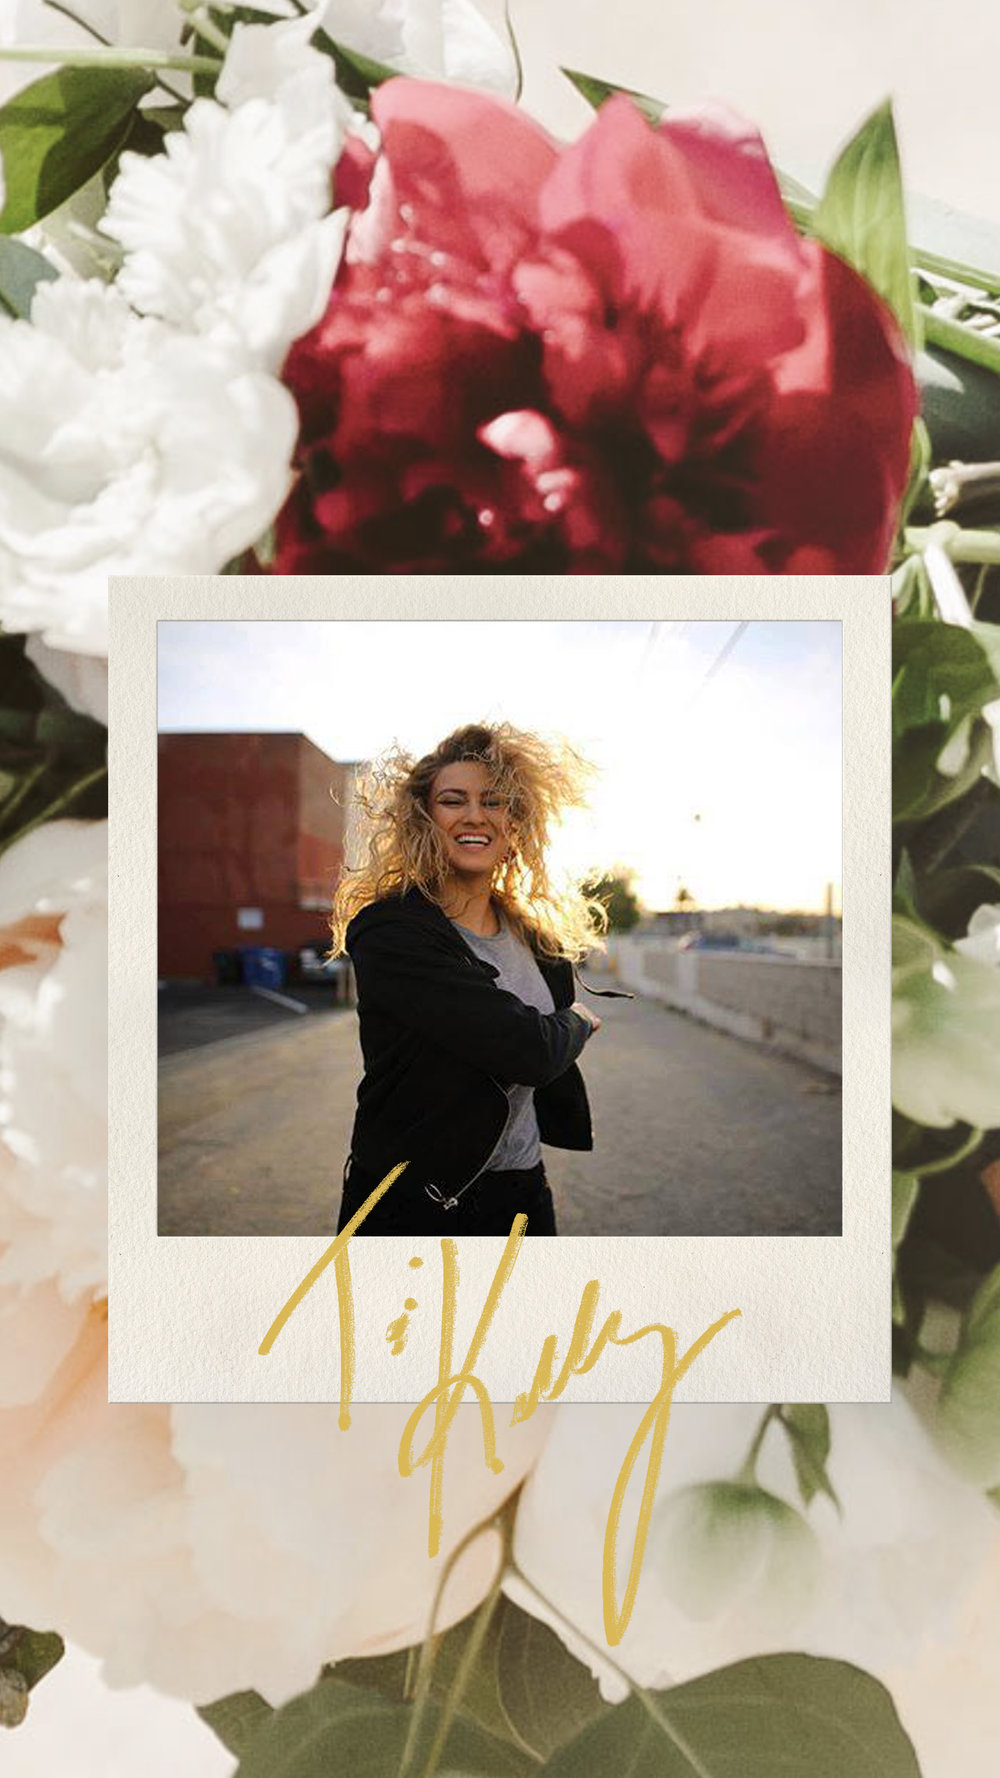 torikelly-lockscreen34.jpg